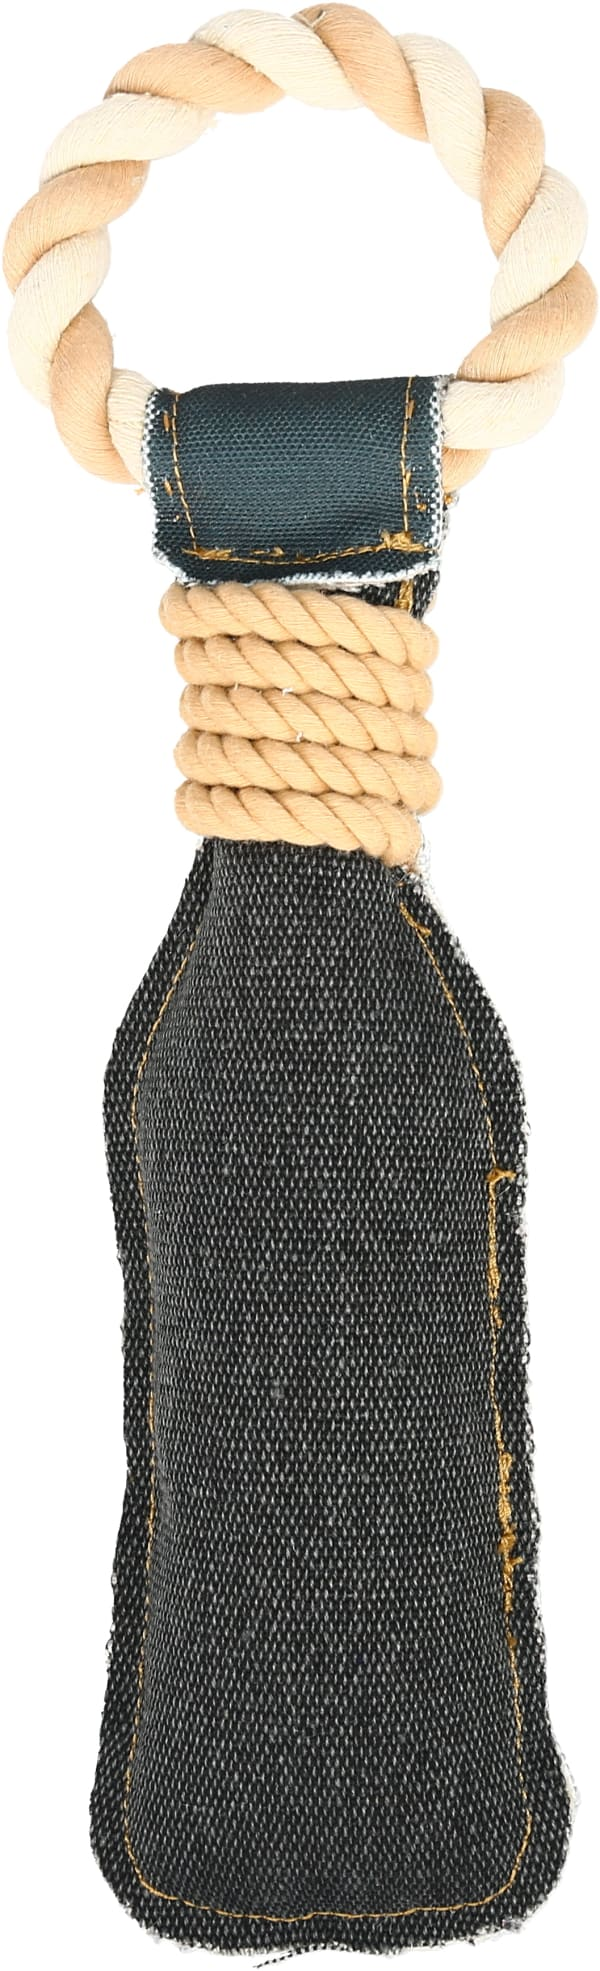 Drinking Alone - Canvas Dog Toy on Rope